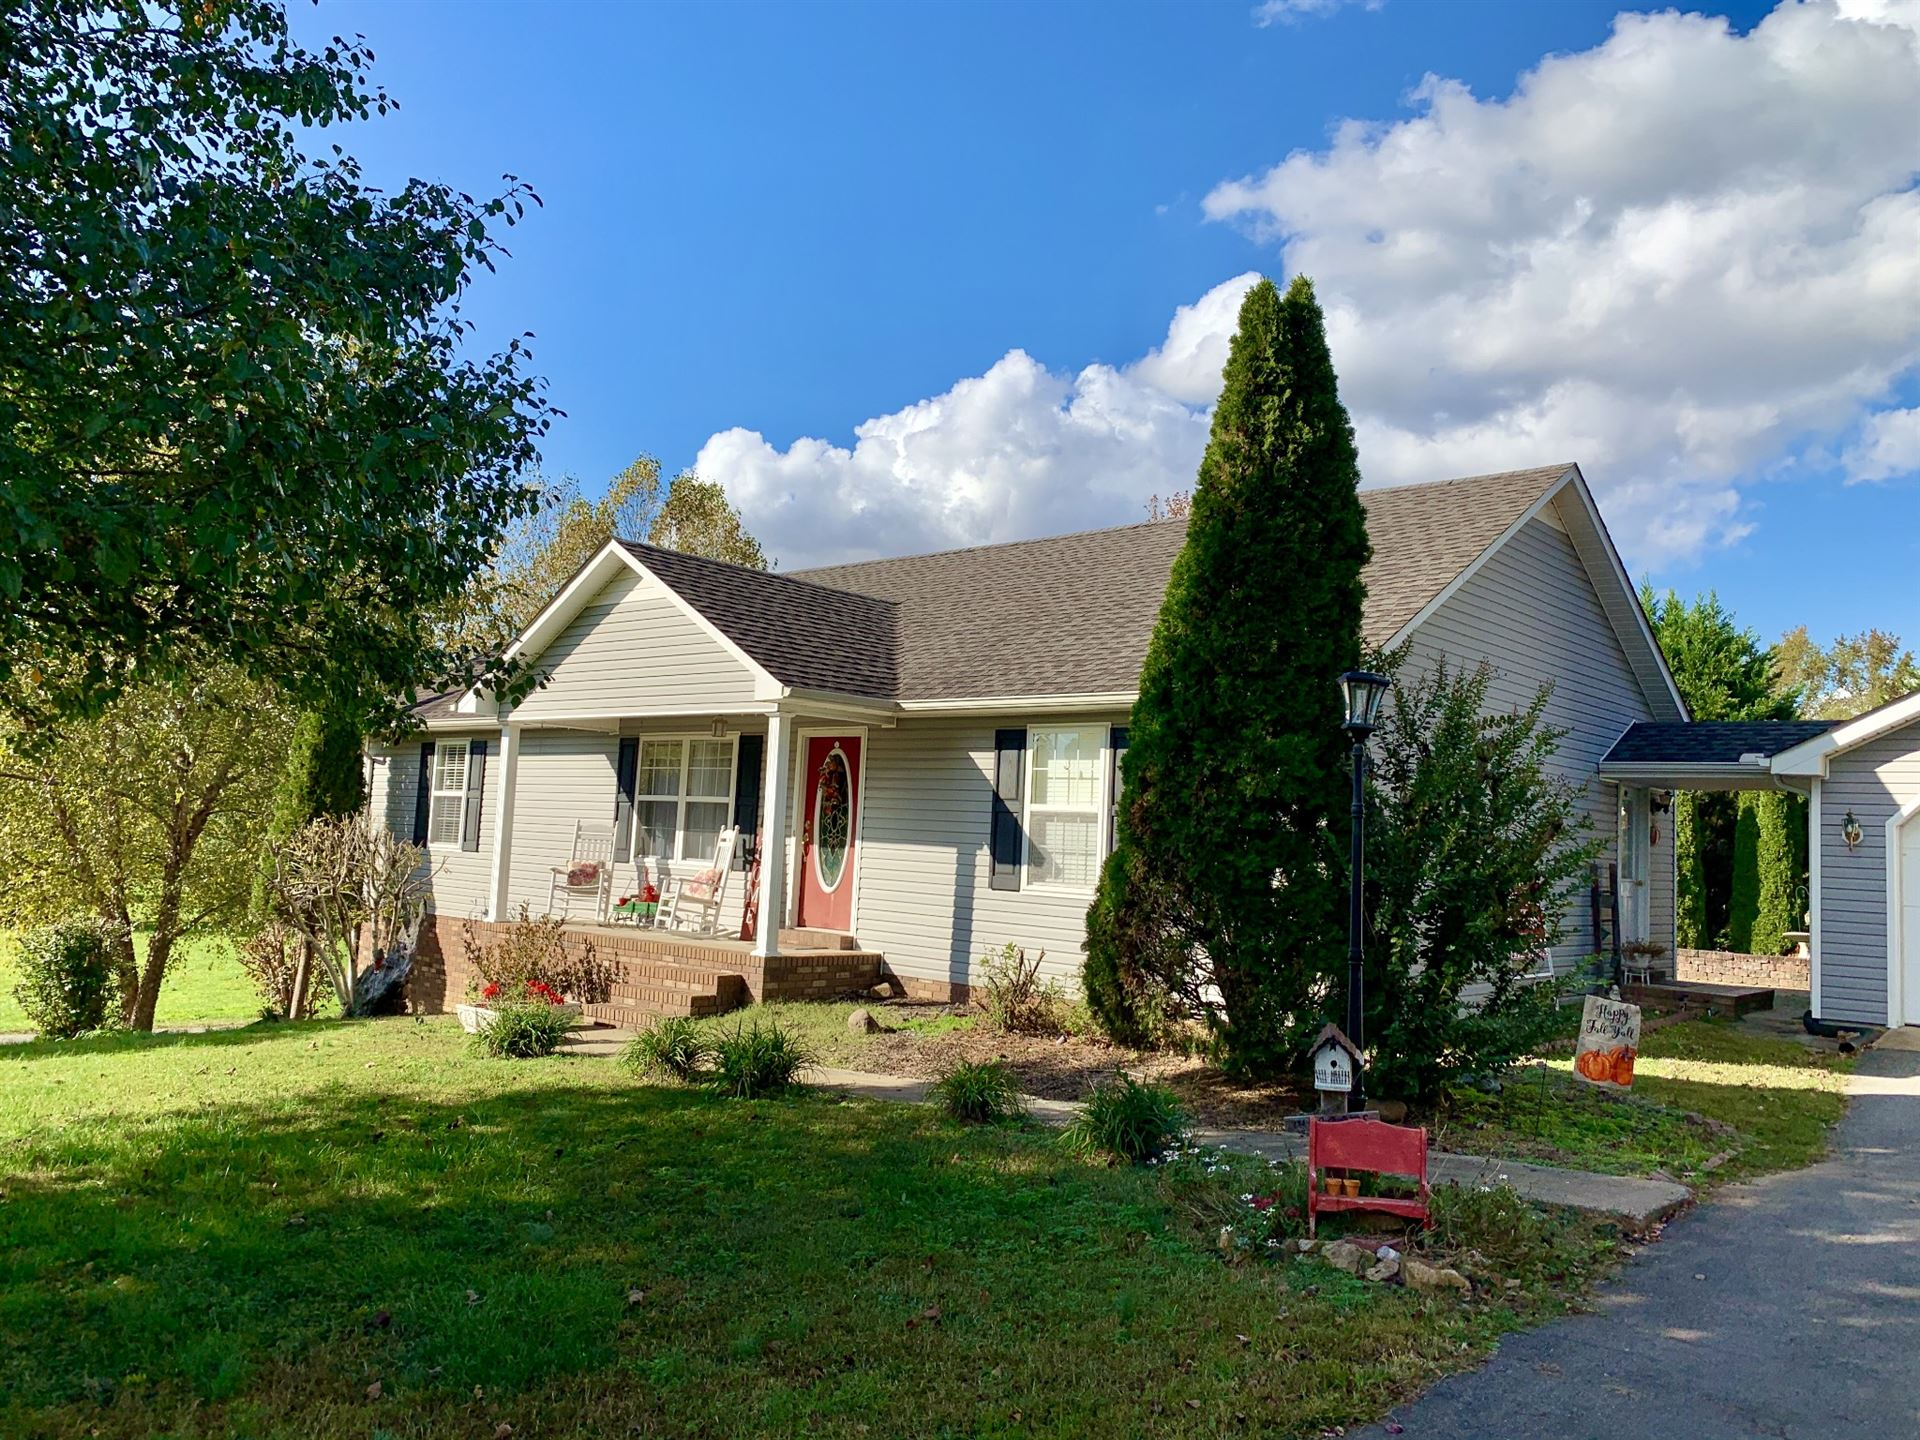 Photo of 14 Paleos Path, Lawrenceburg, TN 38464 (MLS # 2201762)